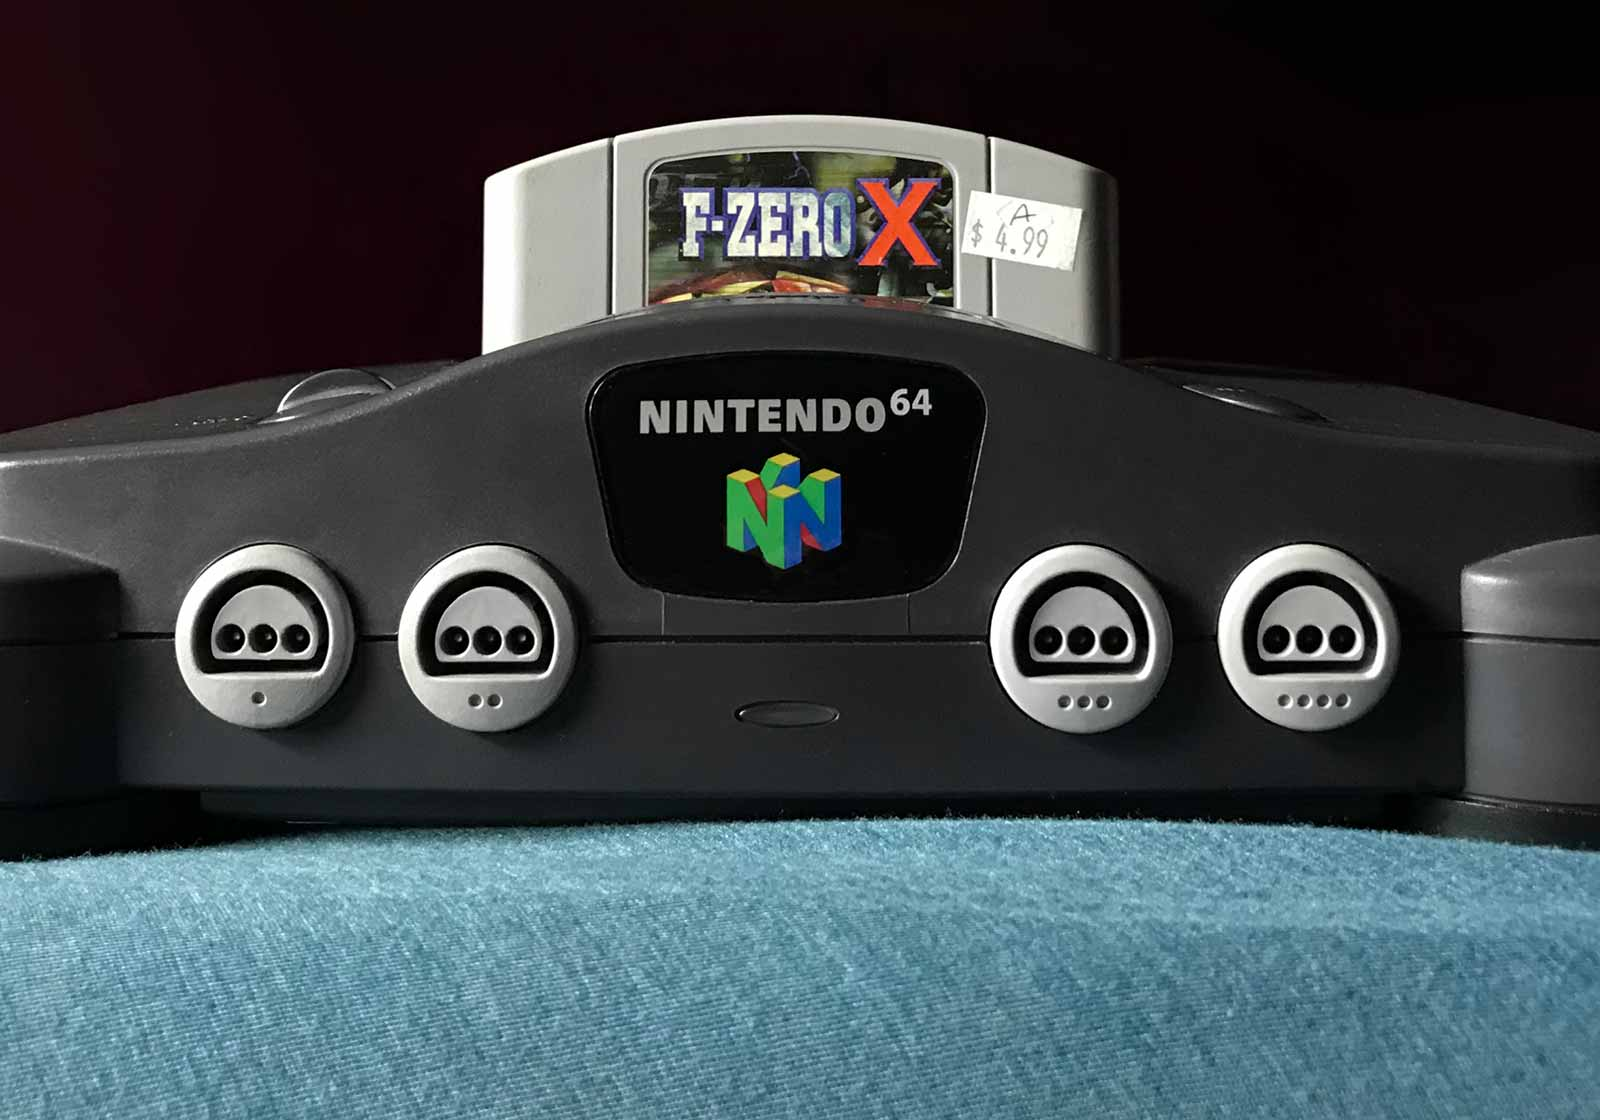 The Best Nintendo 64 (N64) Games Under $15 - RetroGaming with Racketboy